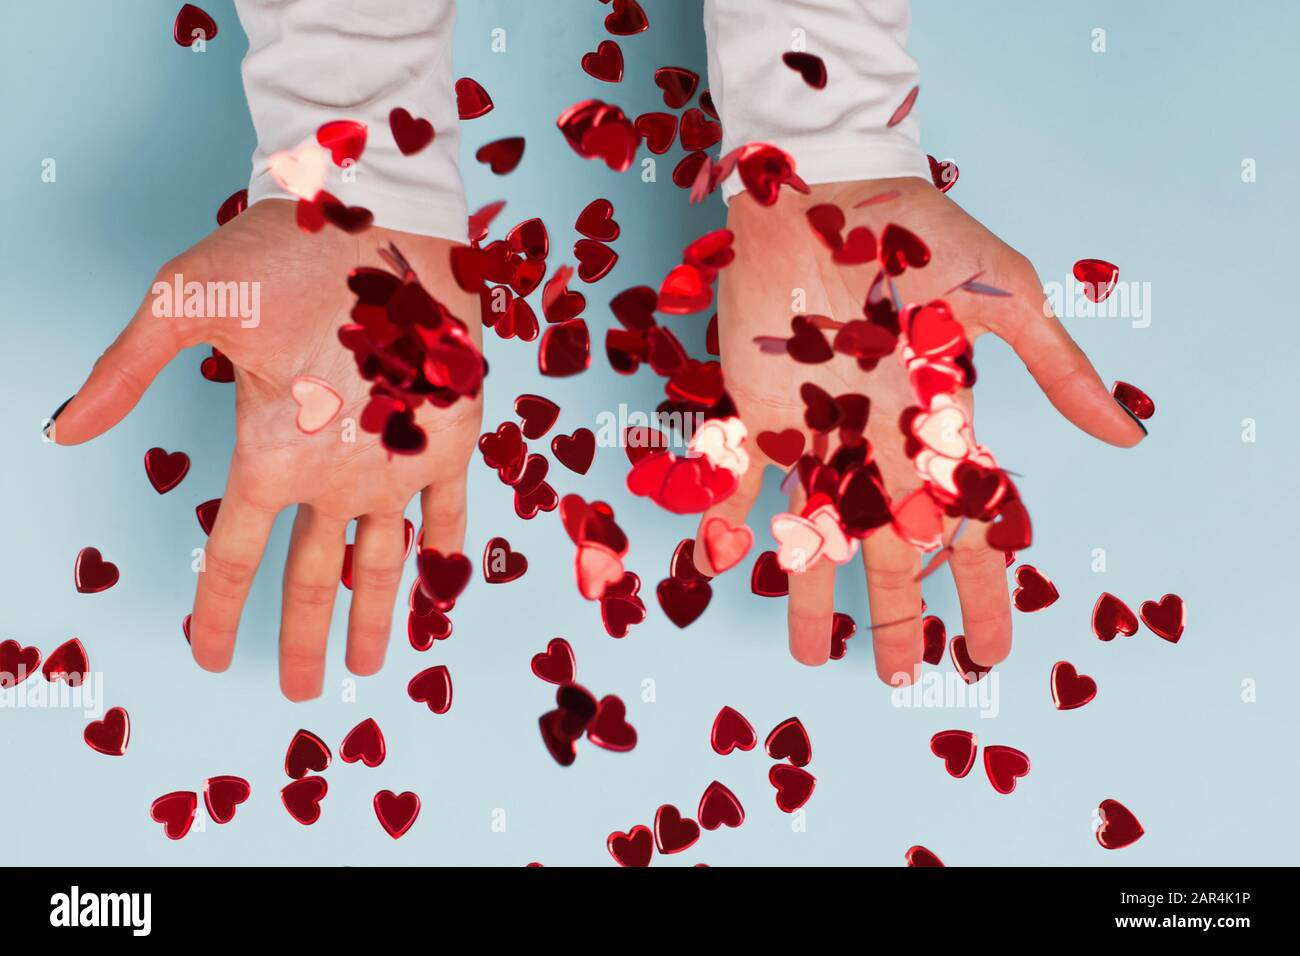 Woman's hands throwing up red heart shaped glitter confetti on ...